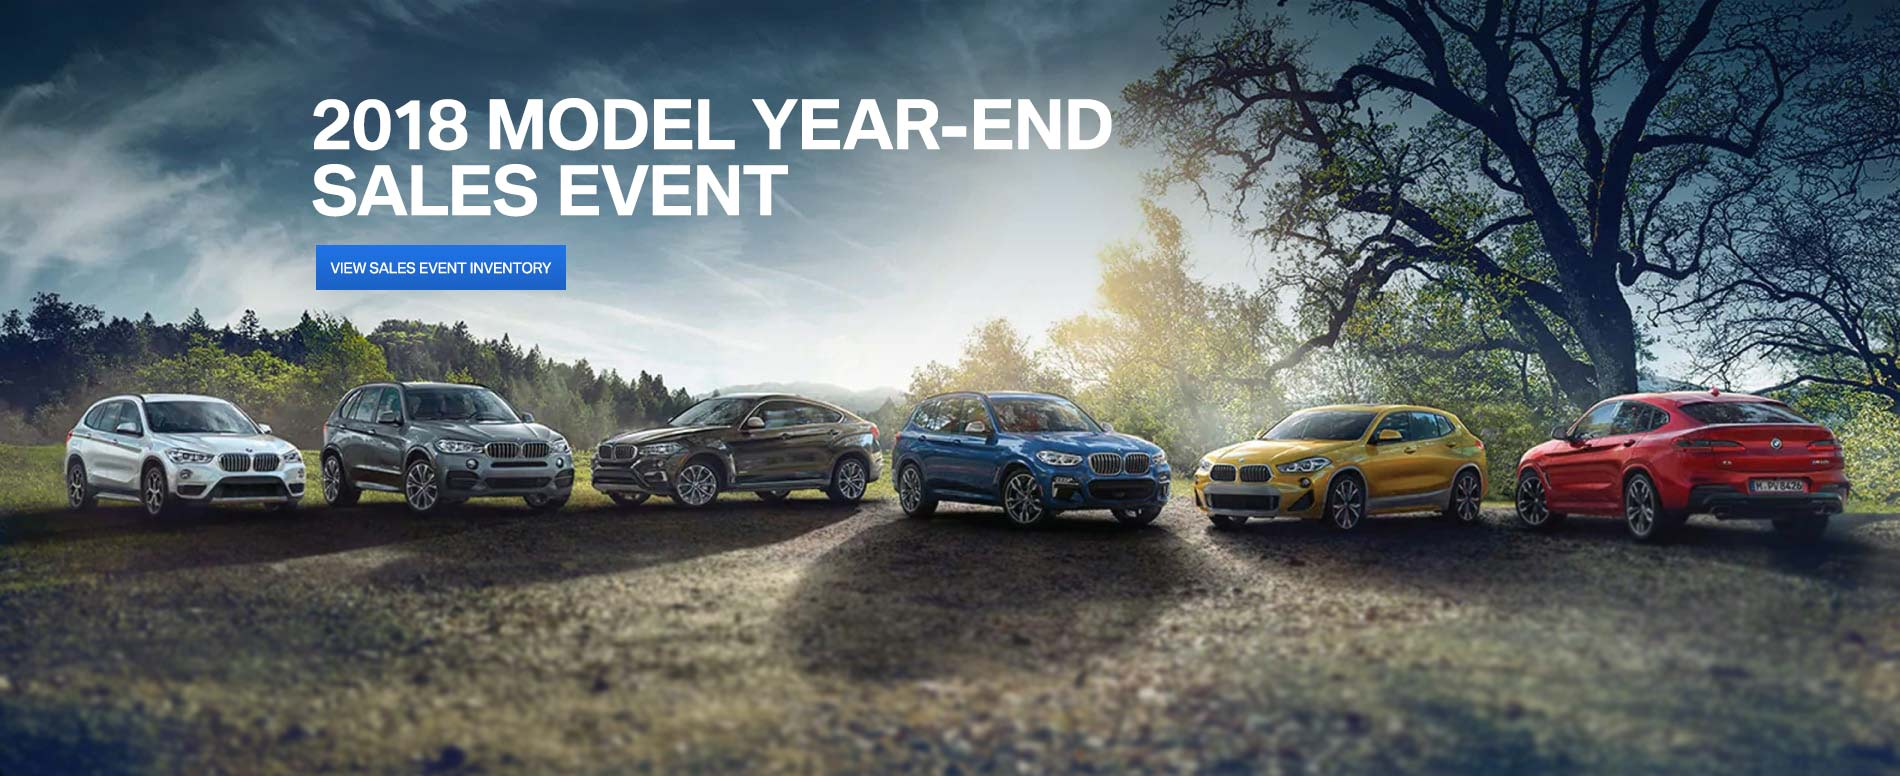 2018 Model Year End Sales Event